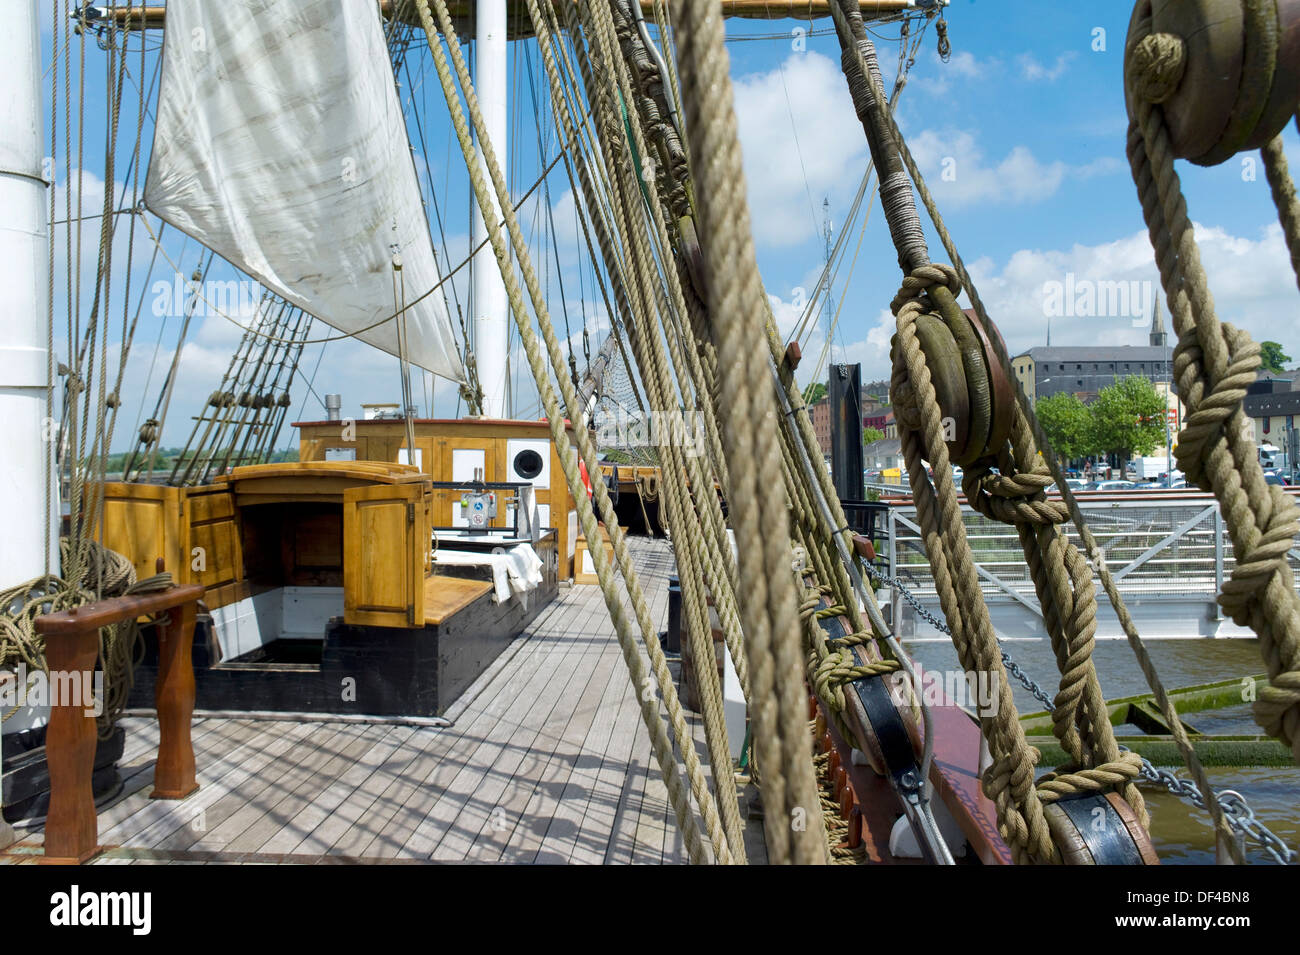 The Dunbrody Famine ship, full scale replica of the original boat built in 1845 wich transported emigrants to North America, - Stock Image